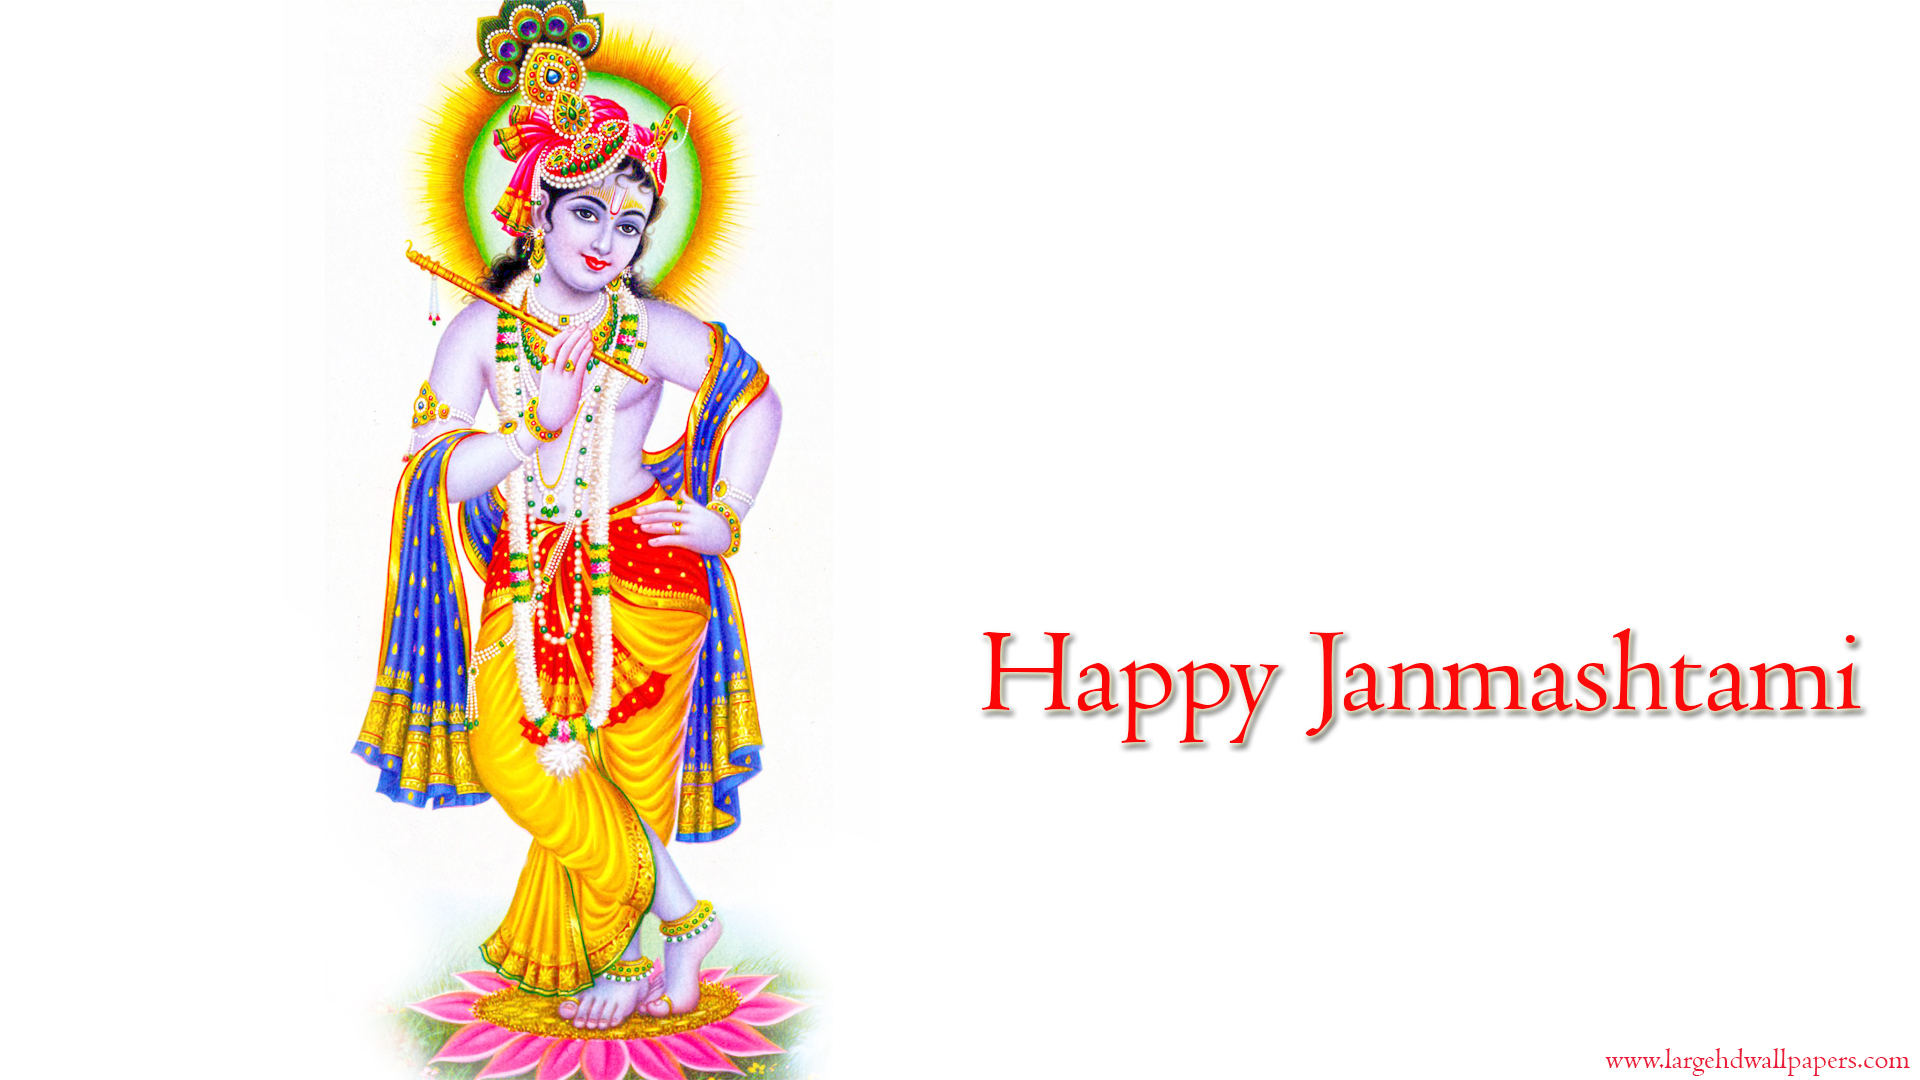 Happy Janmashtami 2019 Wallpapers